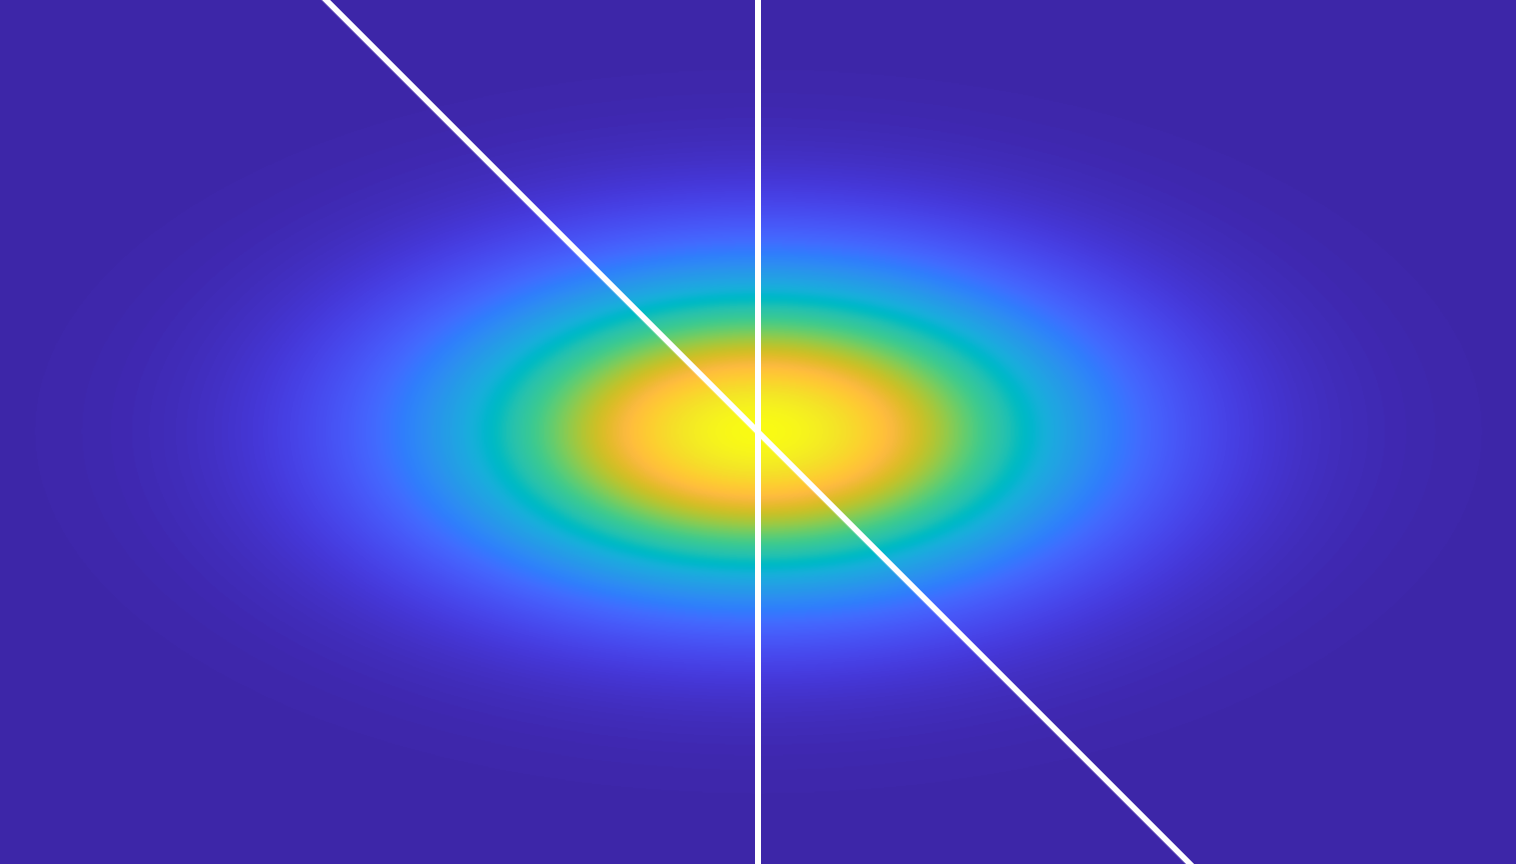 Pseudo-colored two-dimensional probability distribution, normal in both the x and y directions. The result is elliptical. Two white lines indicate x=0 and y=-x. Between them is the probability distribution of interest to the problem.